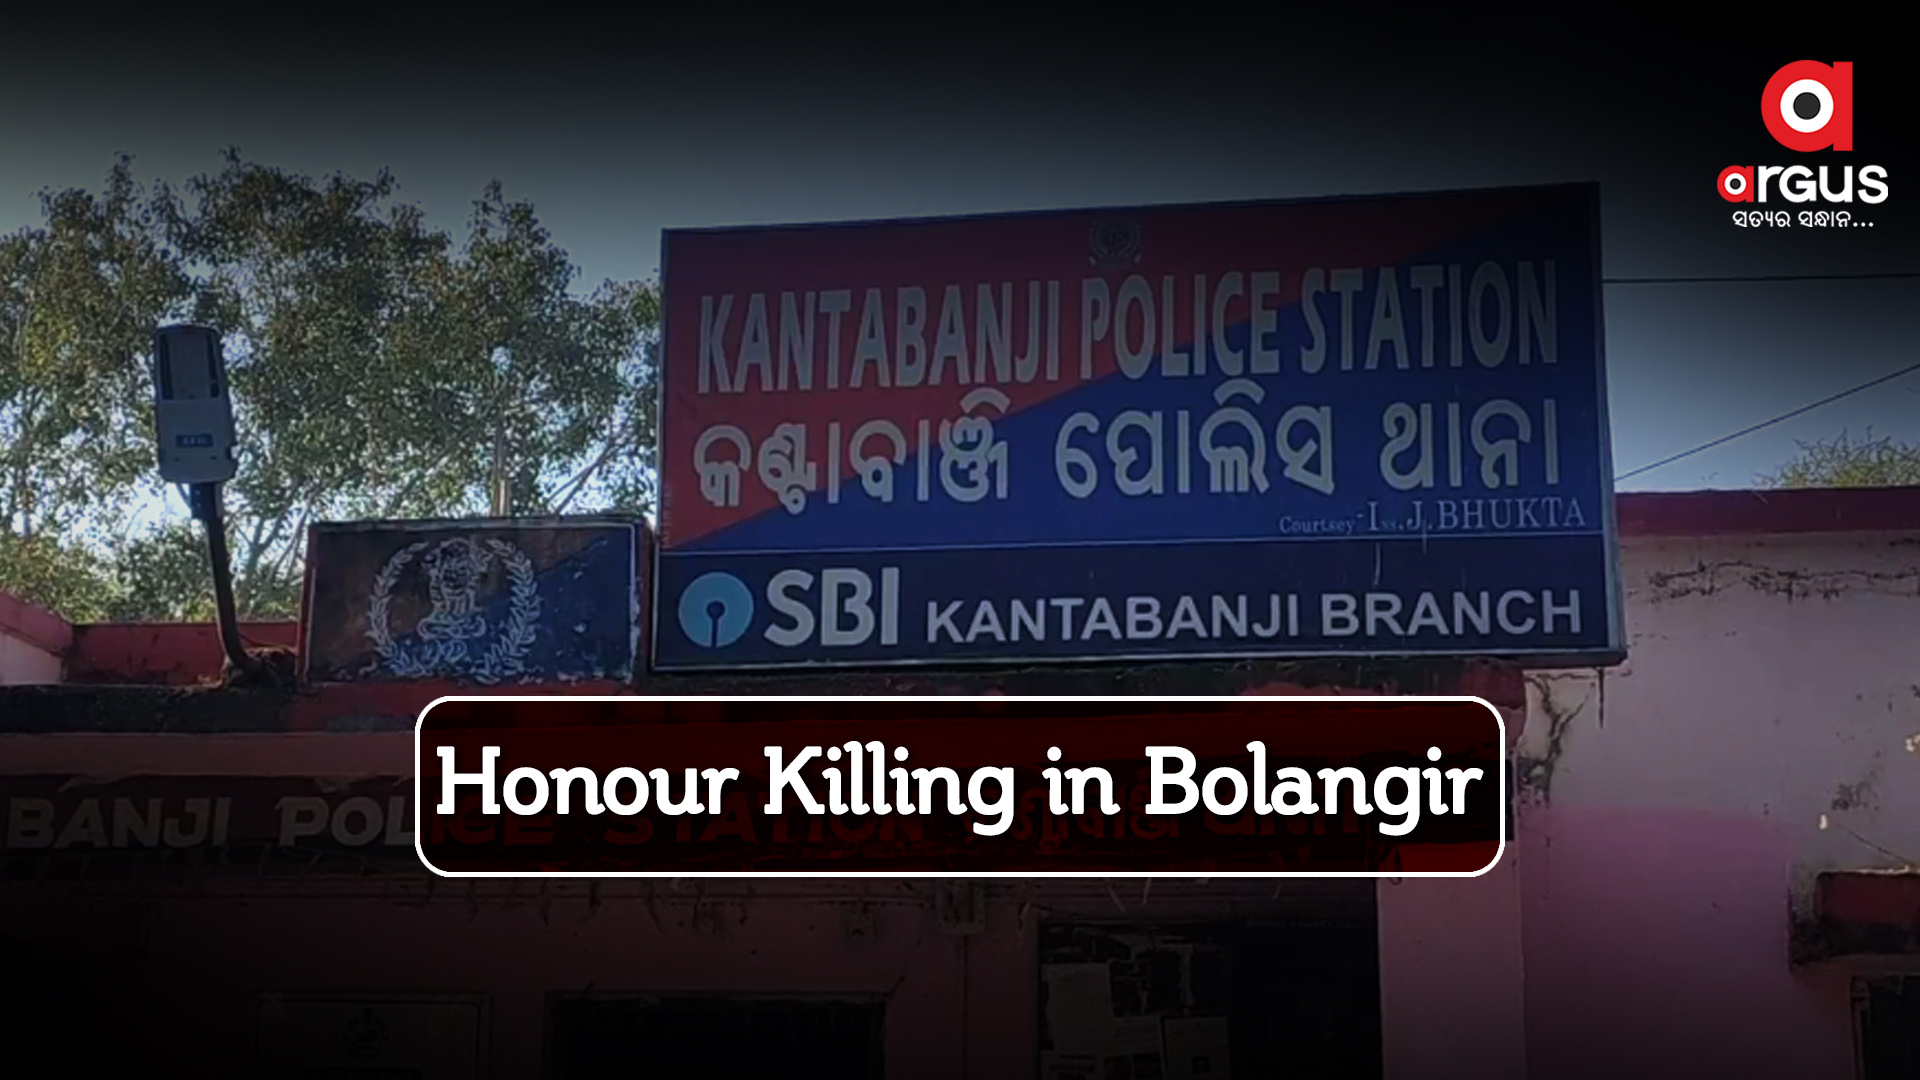 Man's severed body parts found on railway track, honour killing suspected